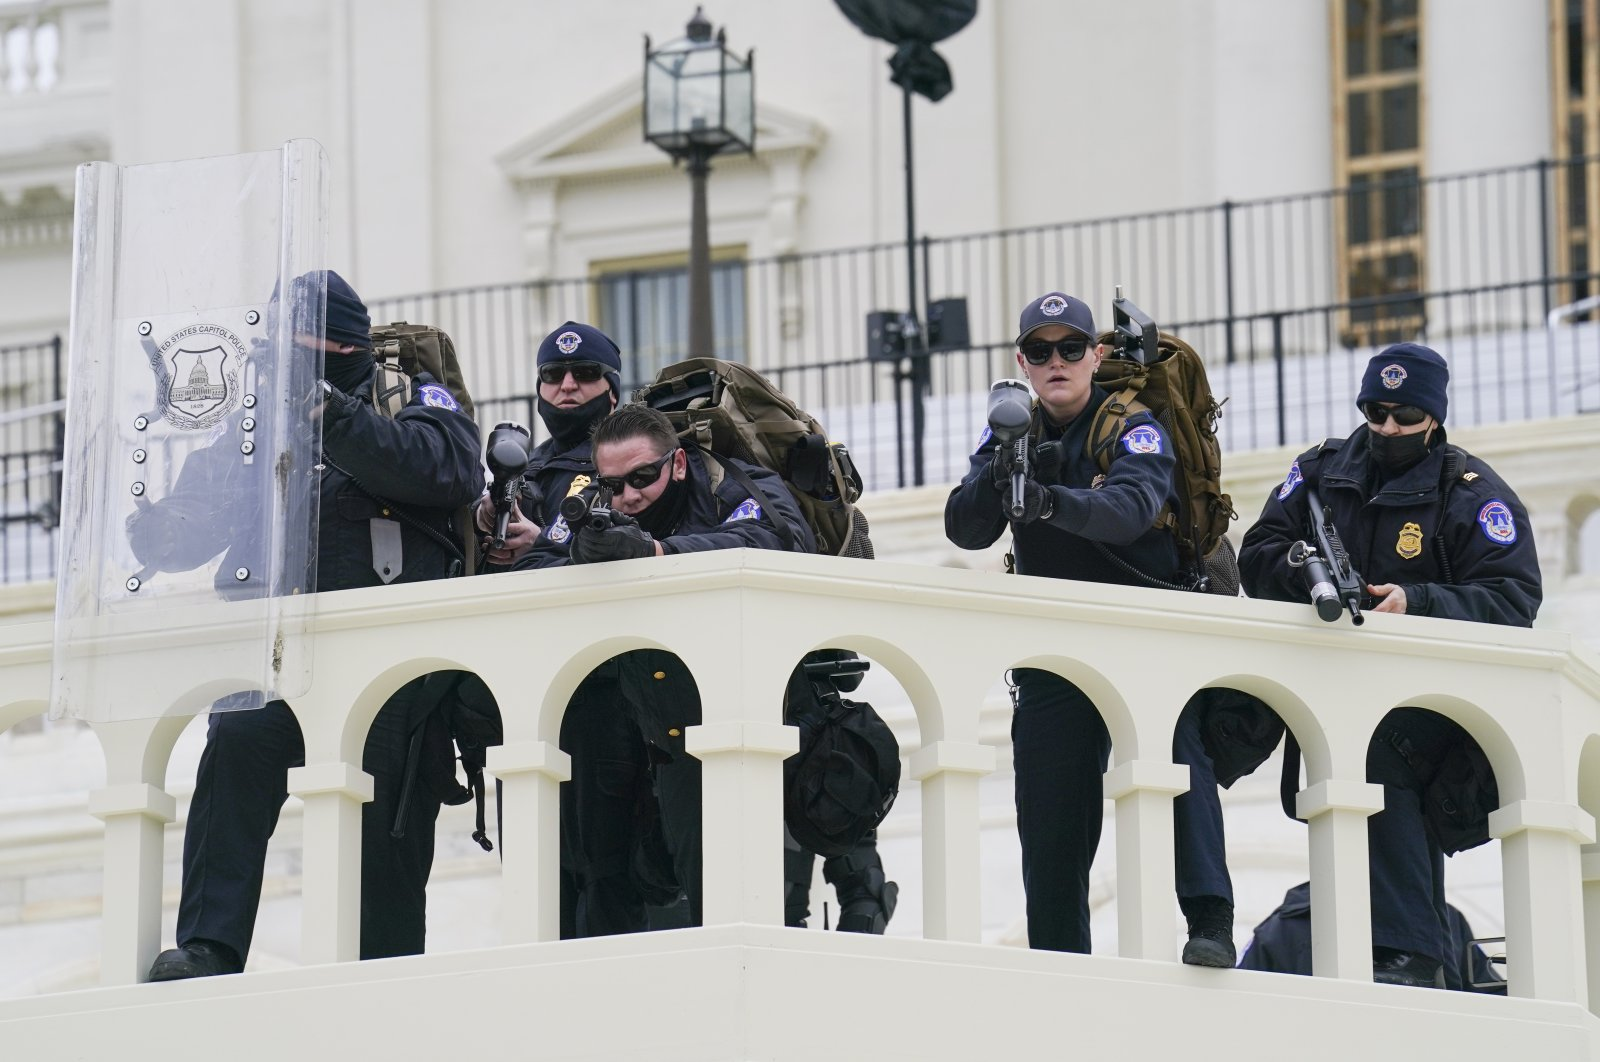 Security officers point guns before pro-Trump supporters successfully breaching the U.S. Capitol building, Washington, D.C., U.S., Jan. 6, 2021. (AP Photo)